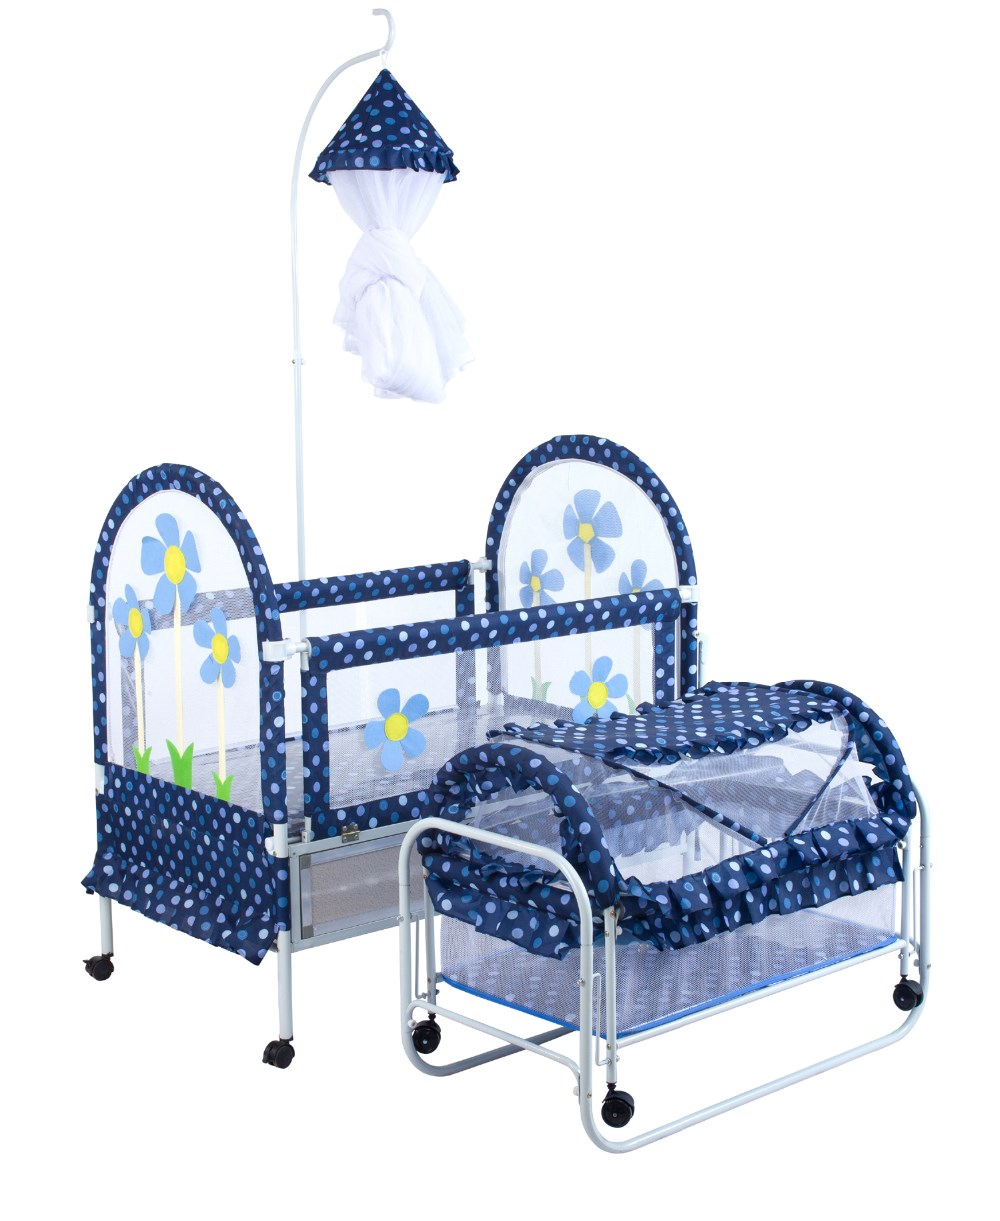 2016 Iron Baby Bed Cribs Cot Playpen Furniture For Kids China ...